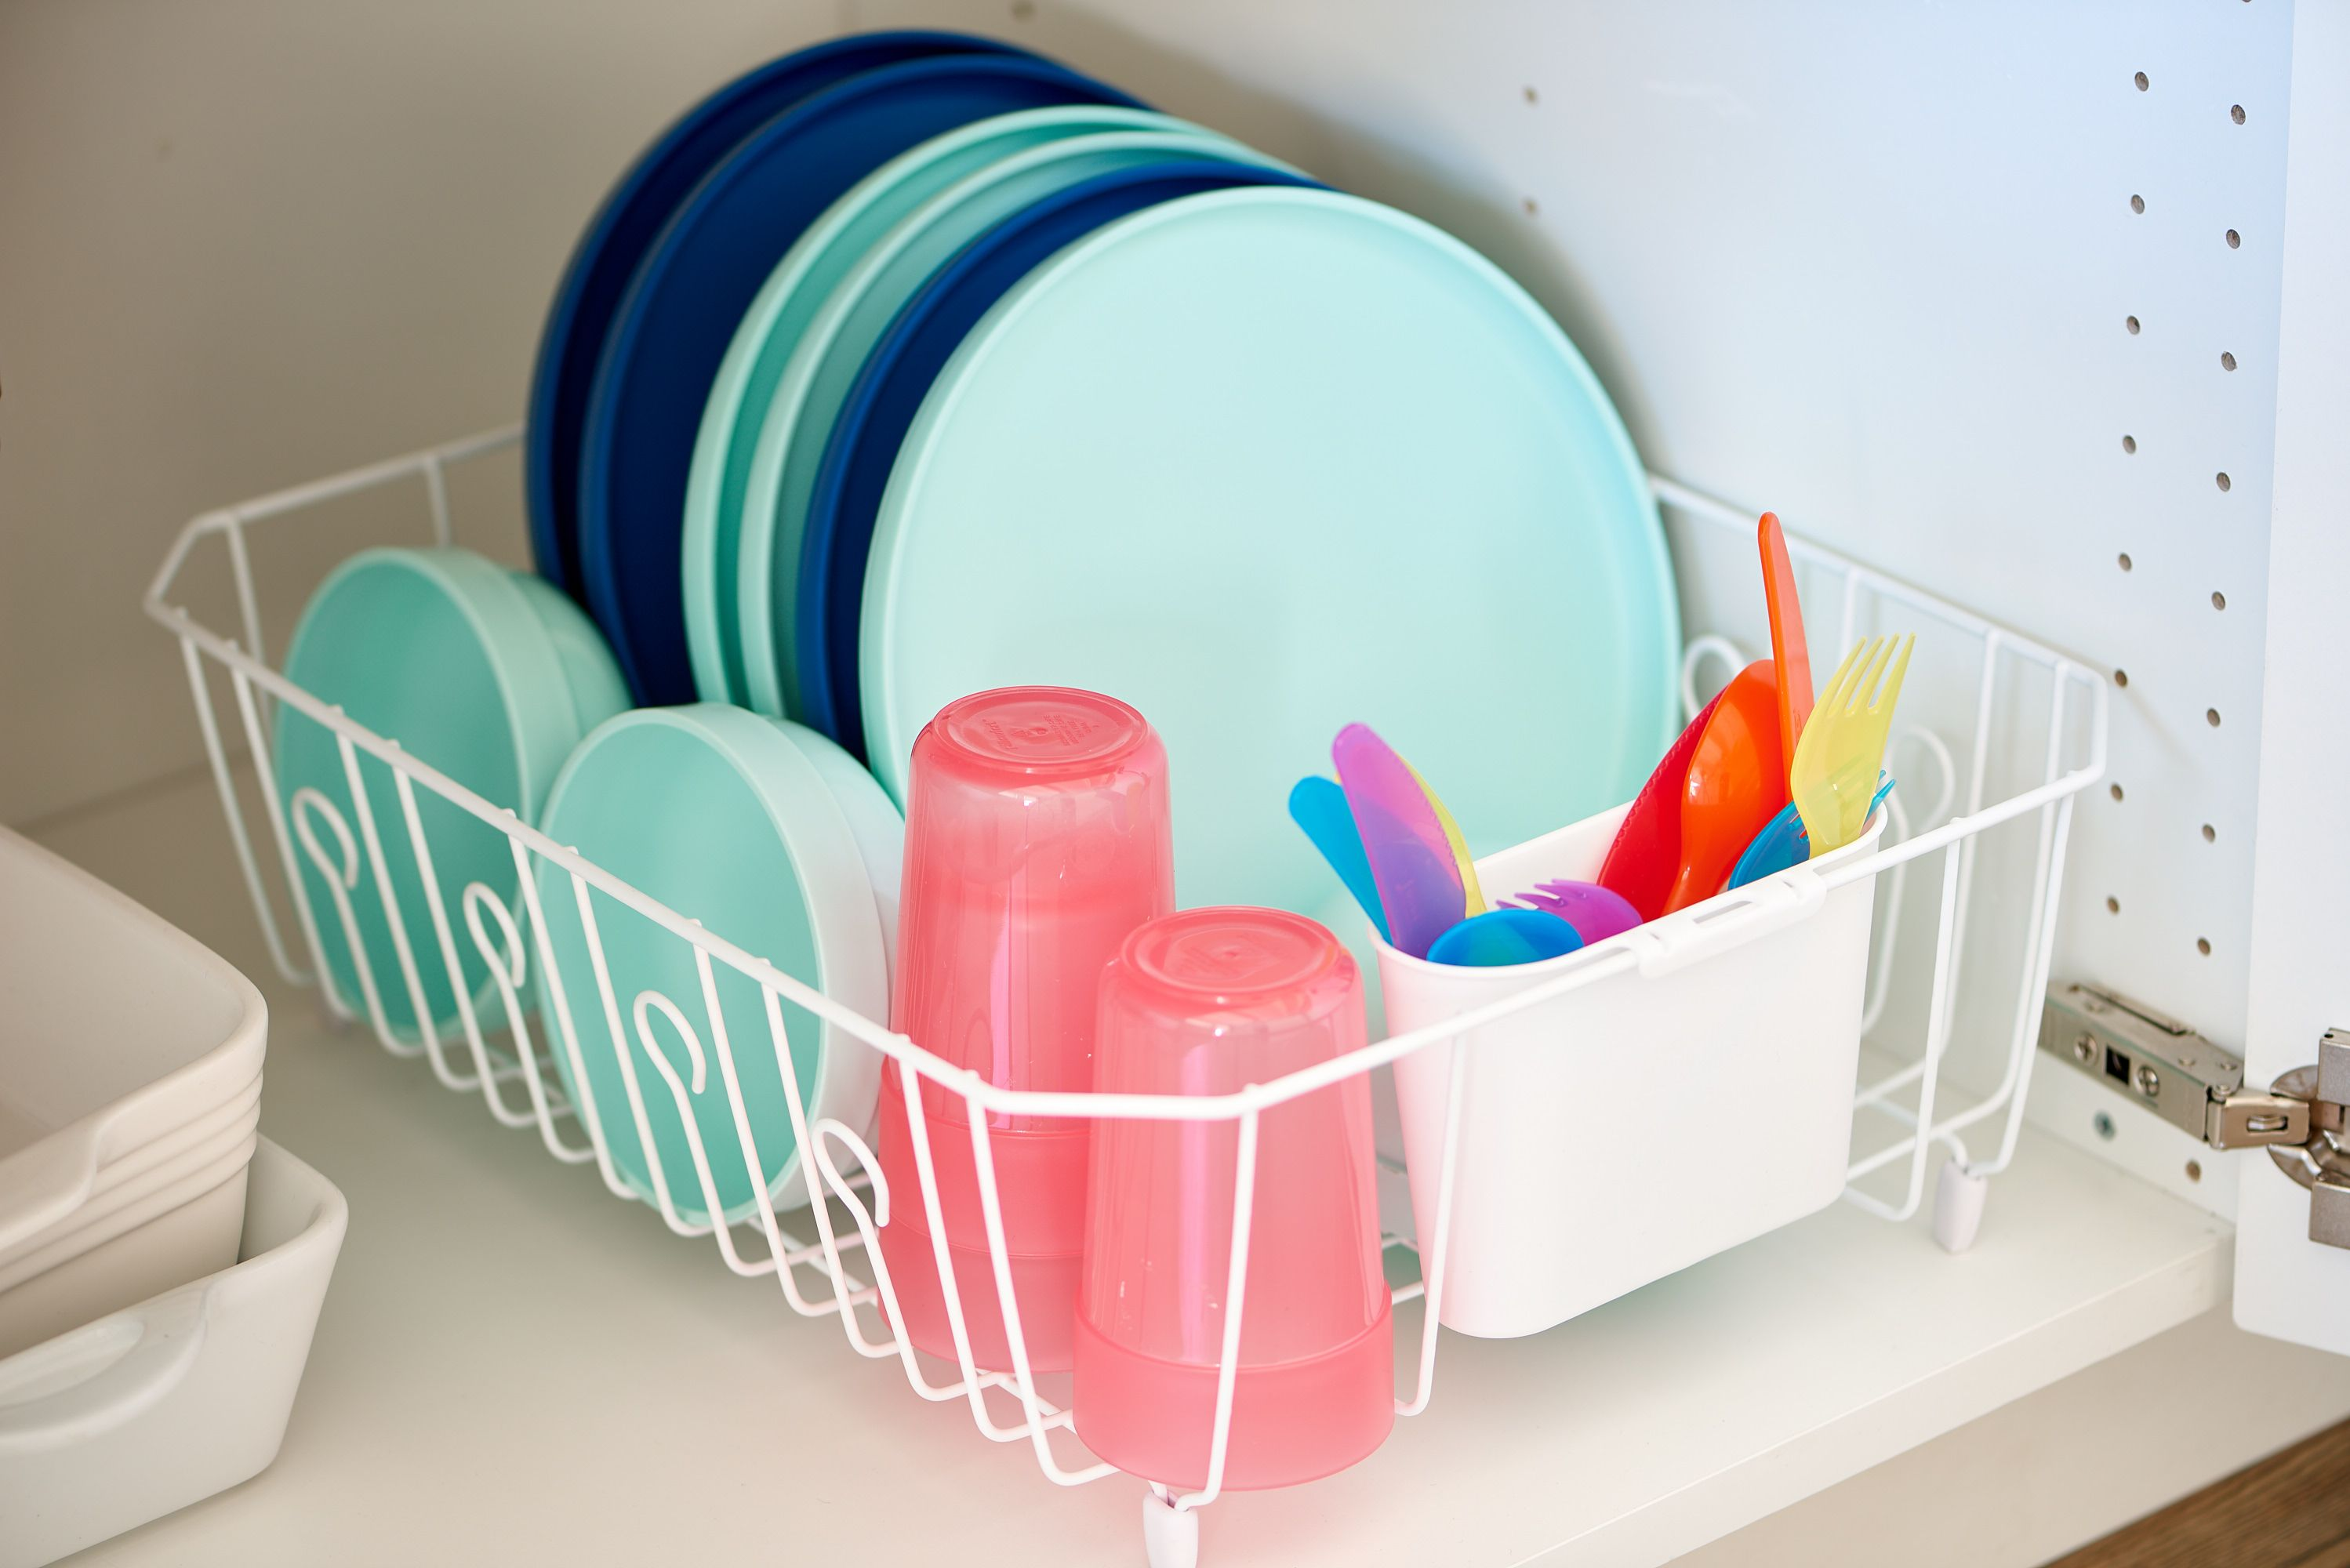 The Most Ingenious Way to Organize All Those Kiddie Plates ...